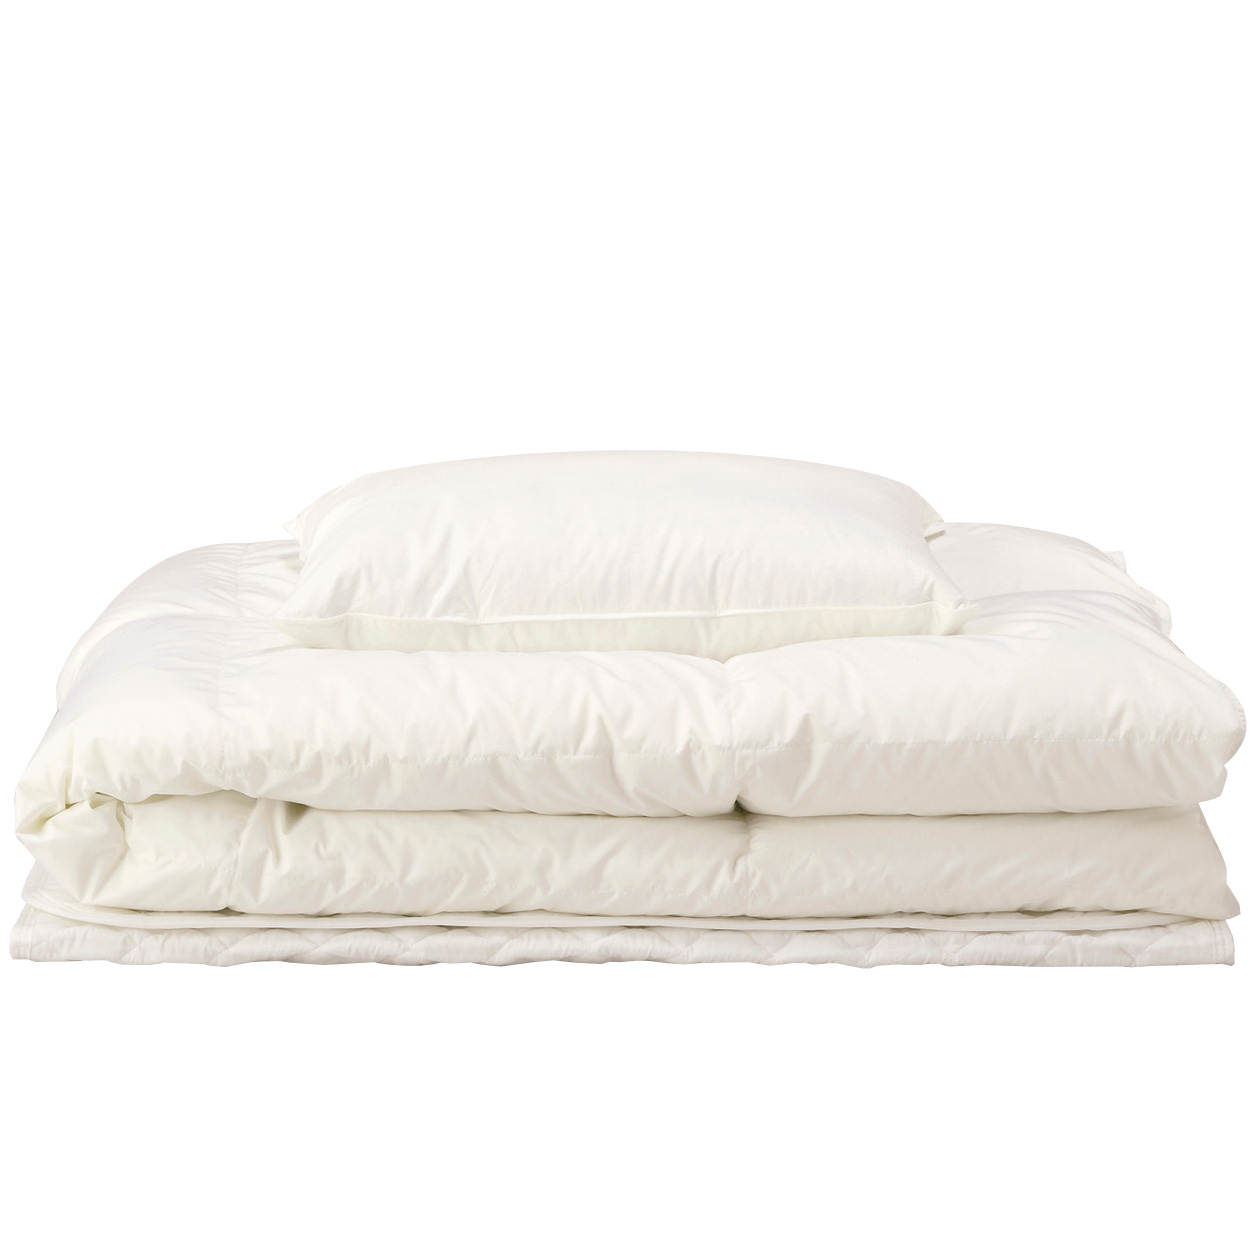 Feather Futon Set For Bed S